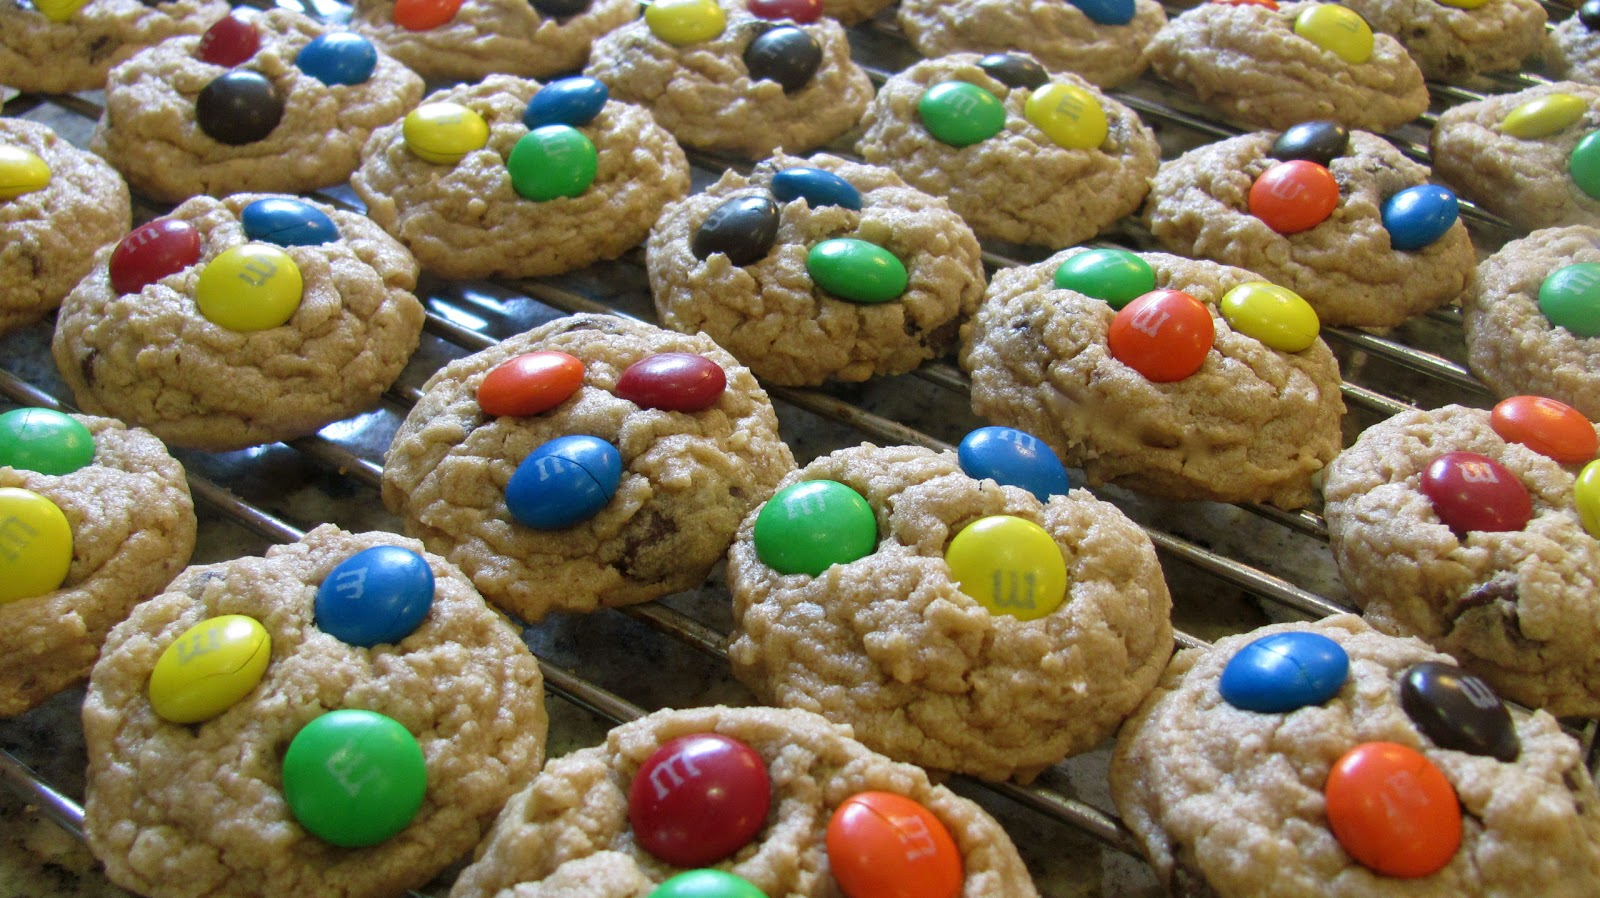 ... !: peanut butter chocolate chip oatmeal cookies with m&m's party